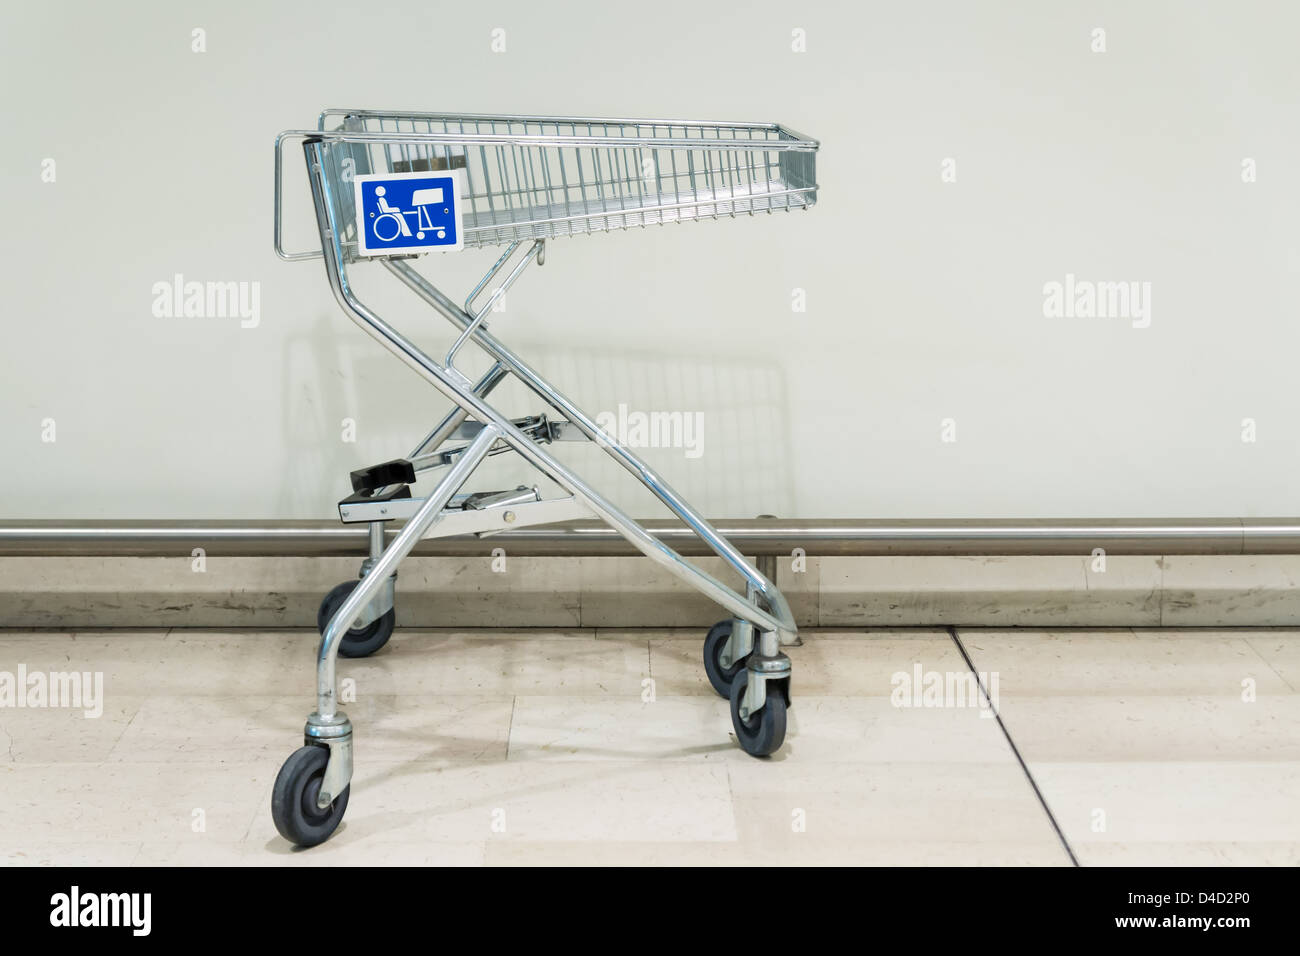 shopping trolley in supermarket with blue disabled sign - Stock Image